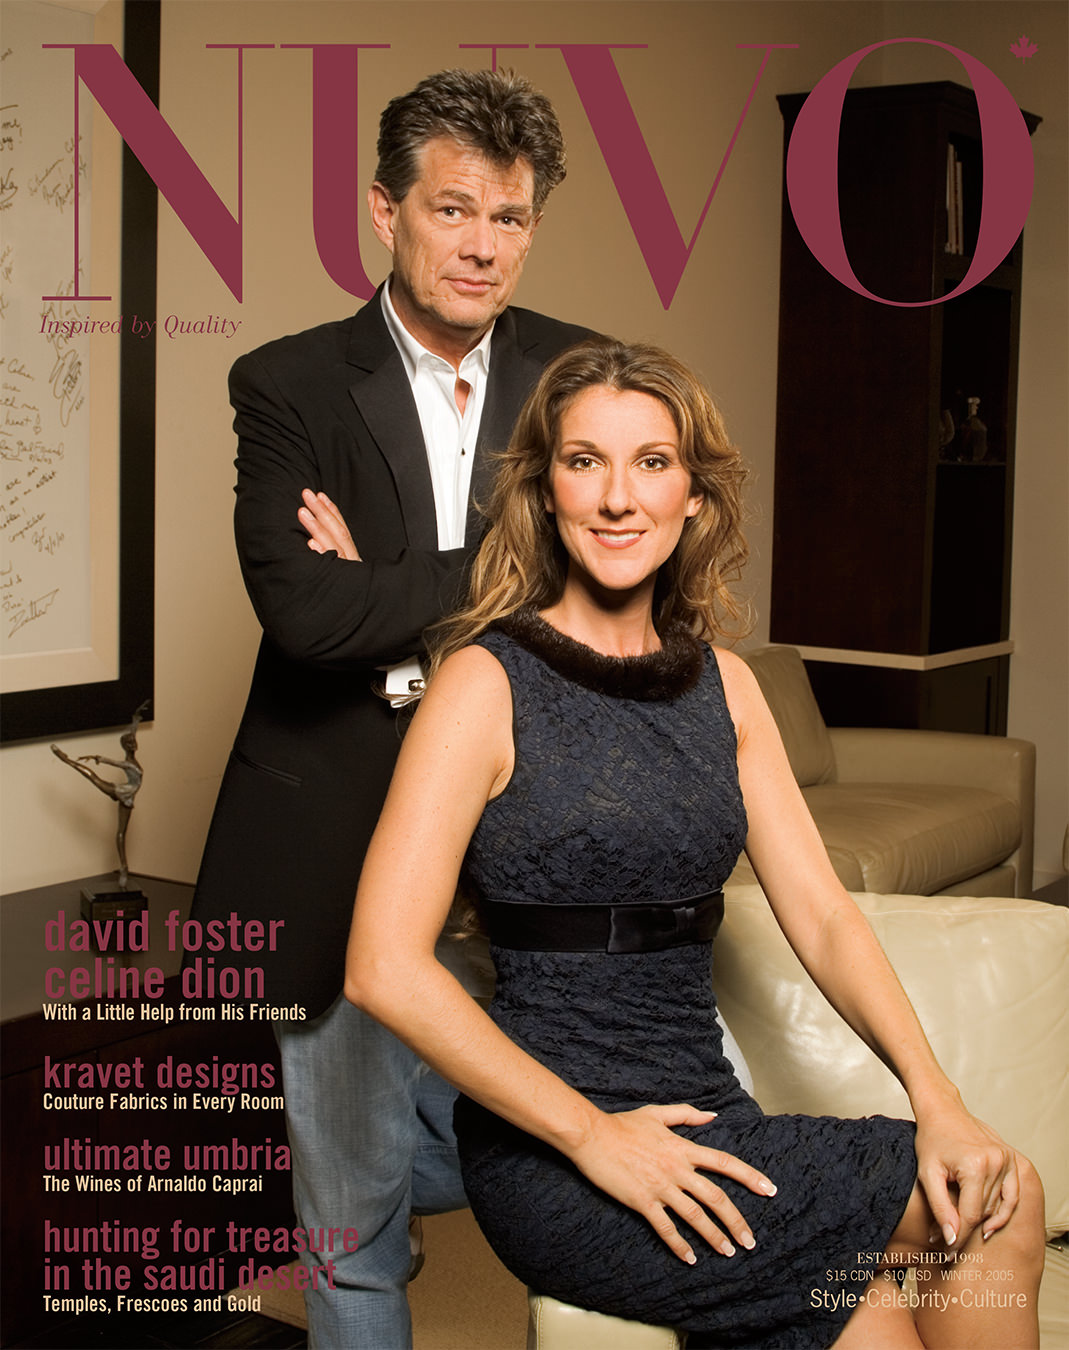 NUVO Magazine Winter 2005 Cover featuring David Foster and Celine Dion